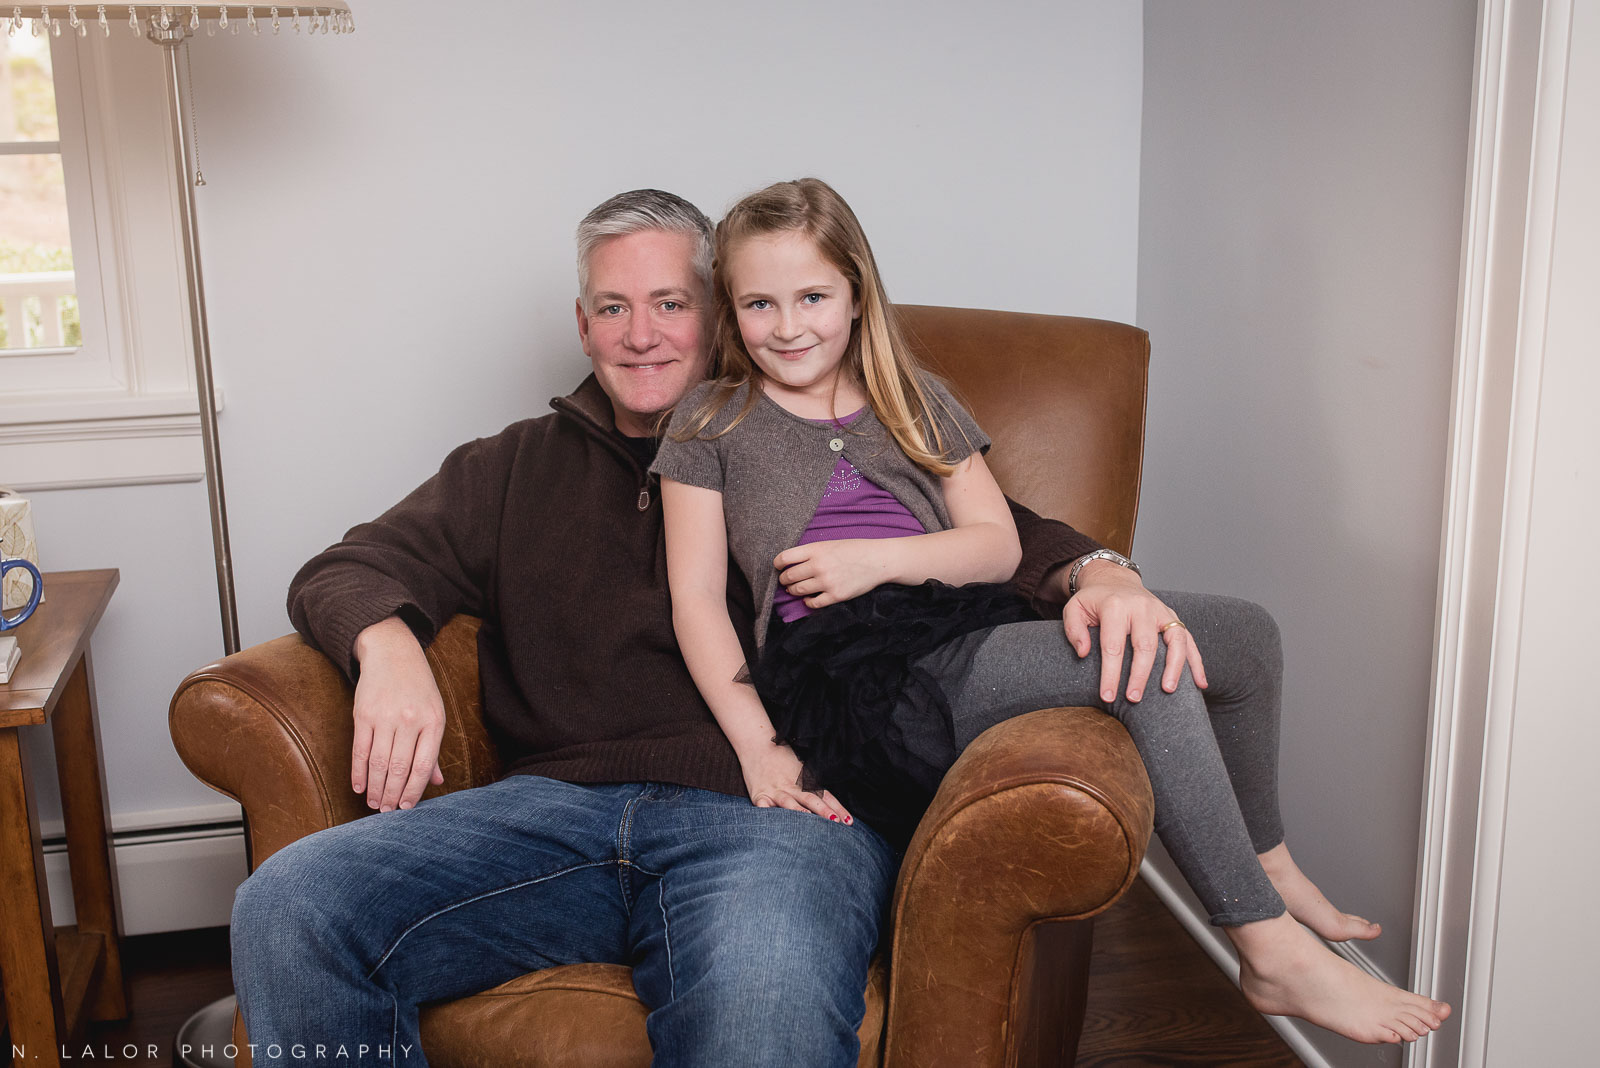 Father with his 7-year old daughter, at home, sitting in his armchair. Family photo session by N. Lalor Photography.